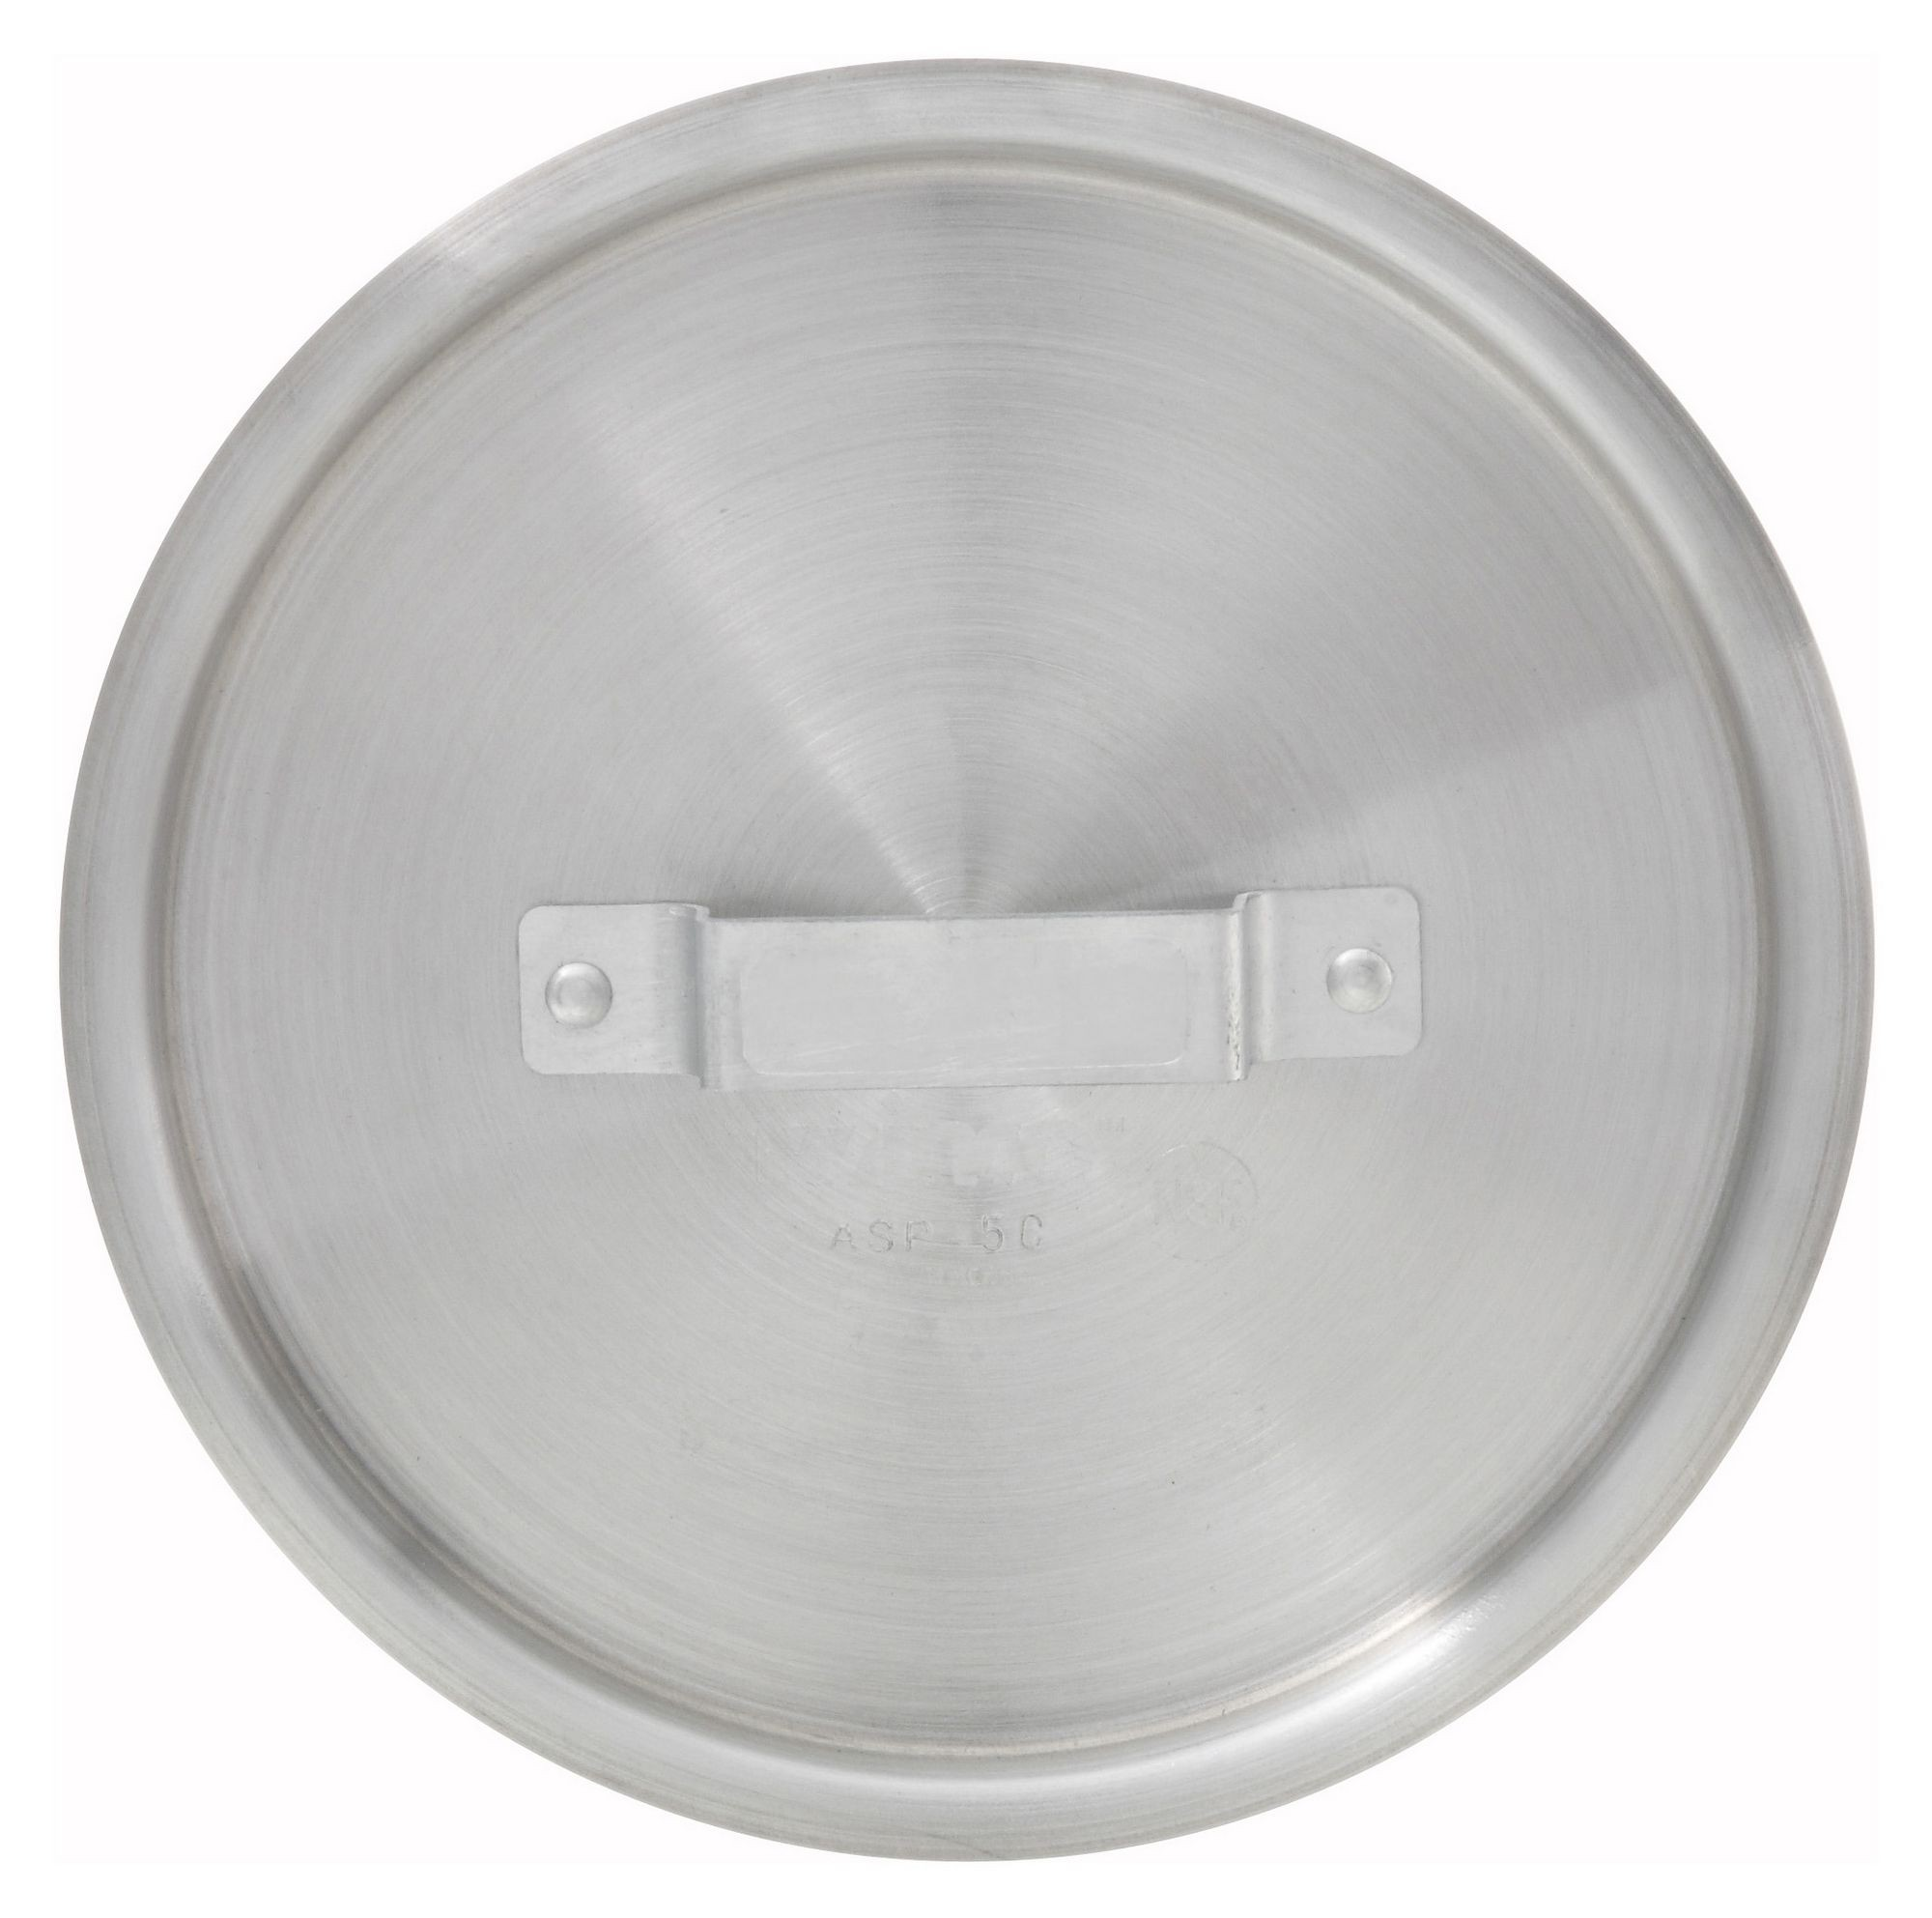 Winco asp-3c Aluminum Cover for 3-3/4 Qt. Sauce Pan (ASP-3)